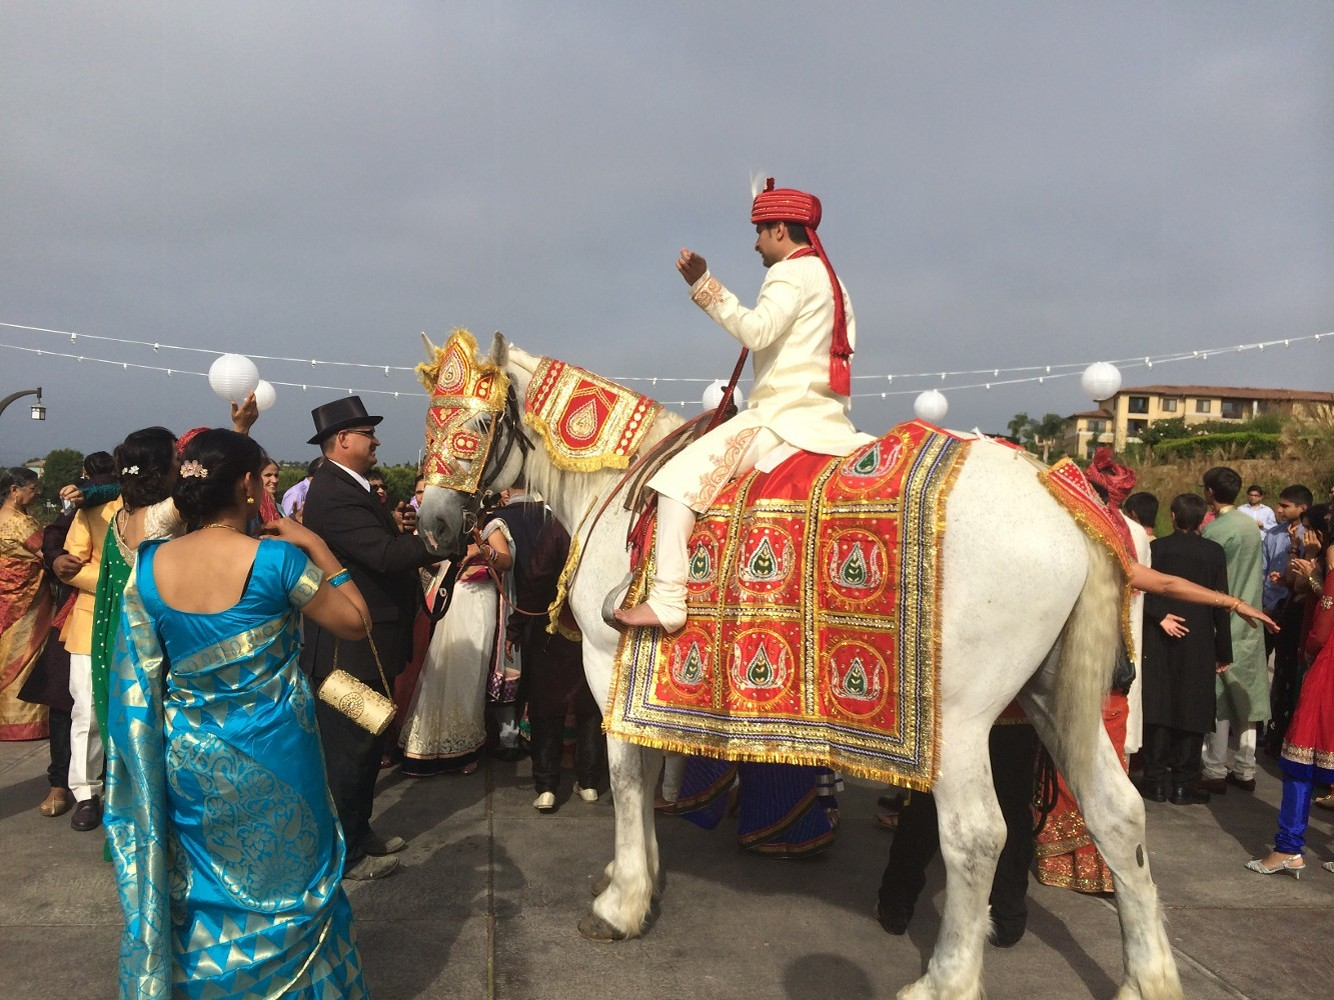 Baraat Horses Available for Traditional South East Asian Weddings